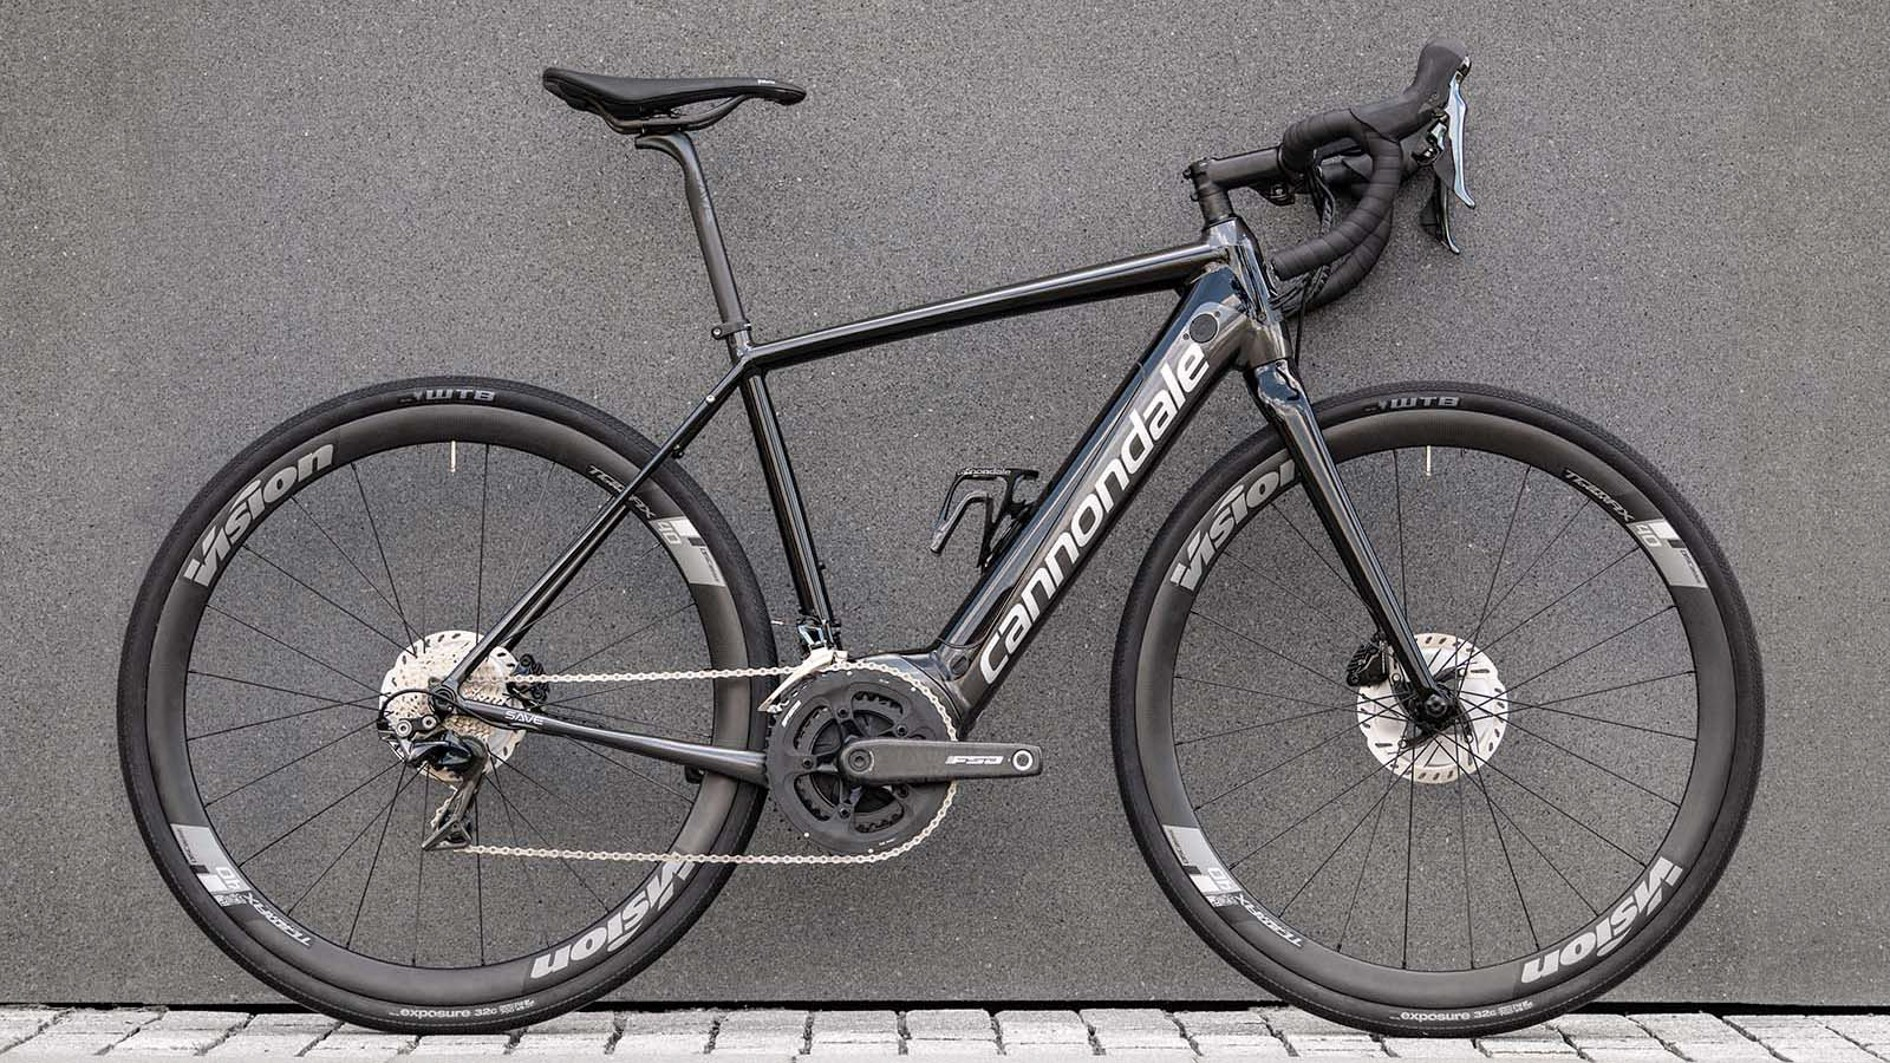 Cannondale's new Synapse NEO is the latest addition to the burgeoning performance e-road bike market